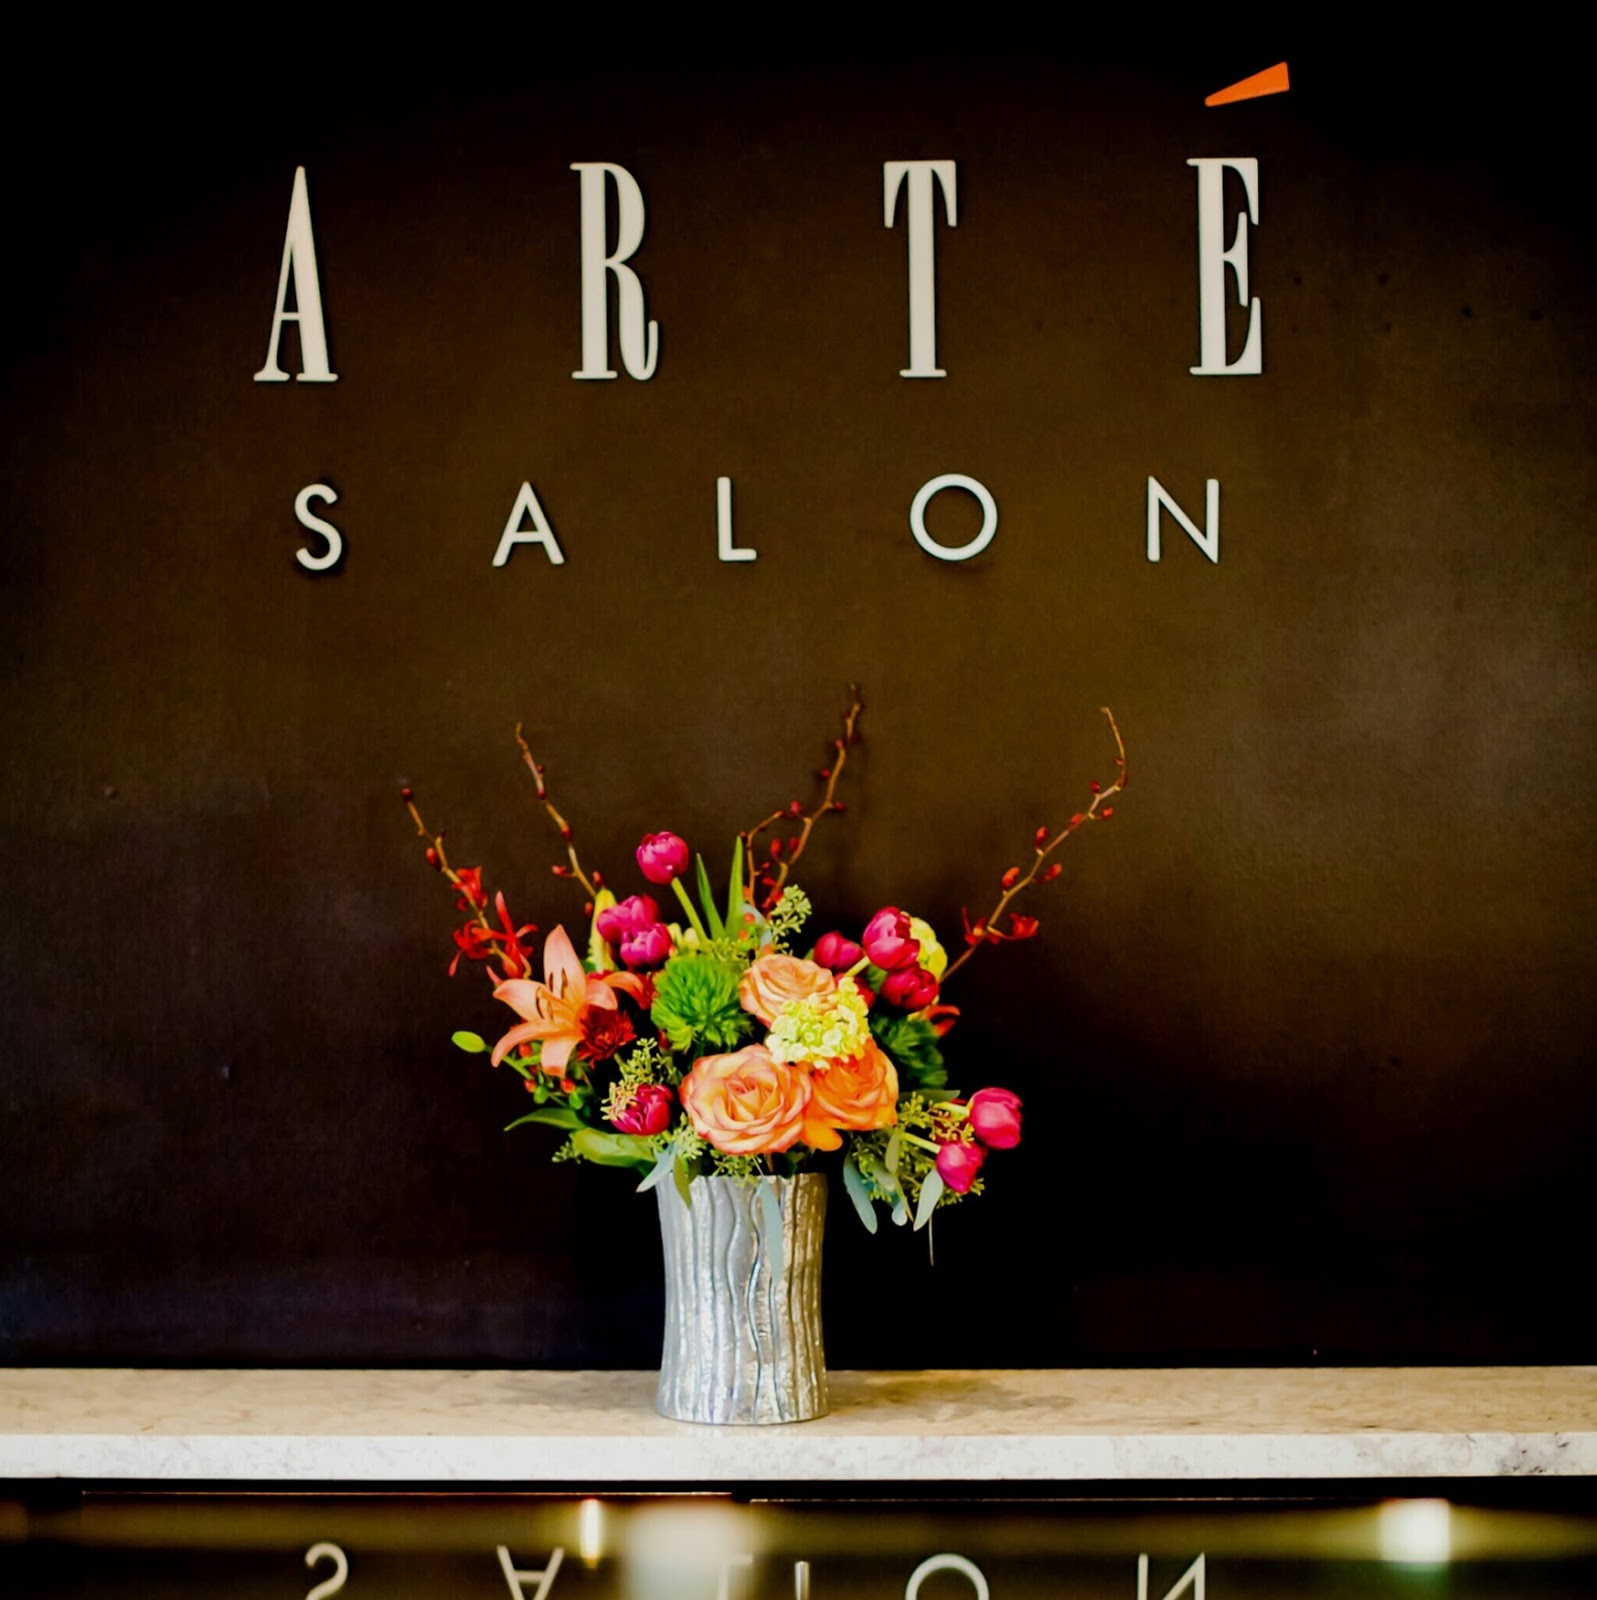 Arte Wayland Ma Salon Arte 16 Boston Post Road Wayland Reviews And Appointments